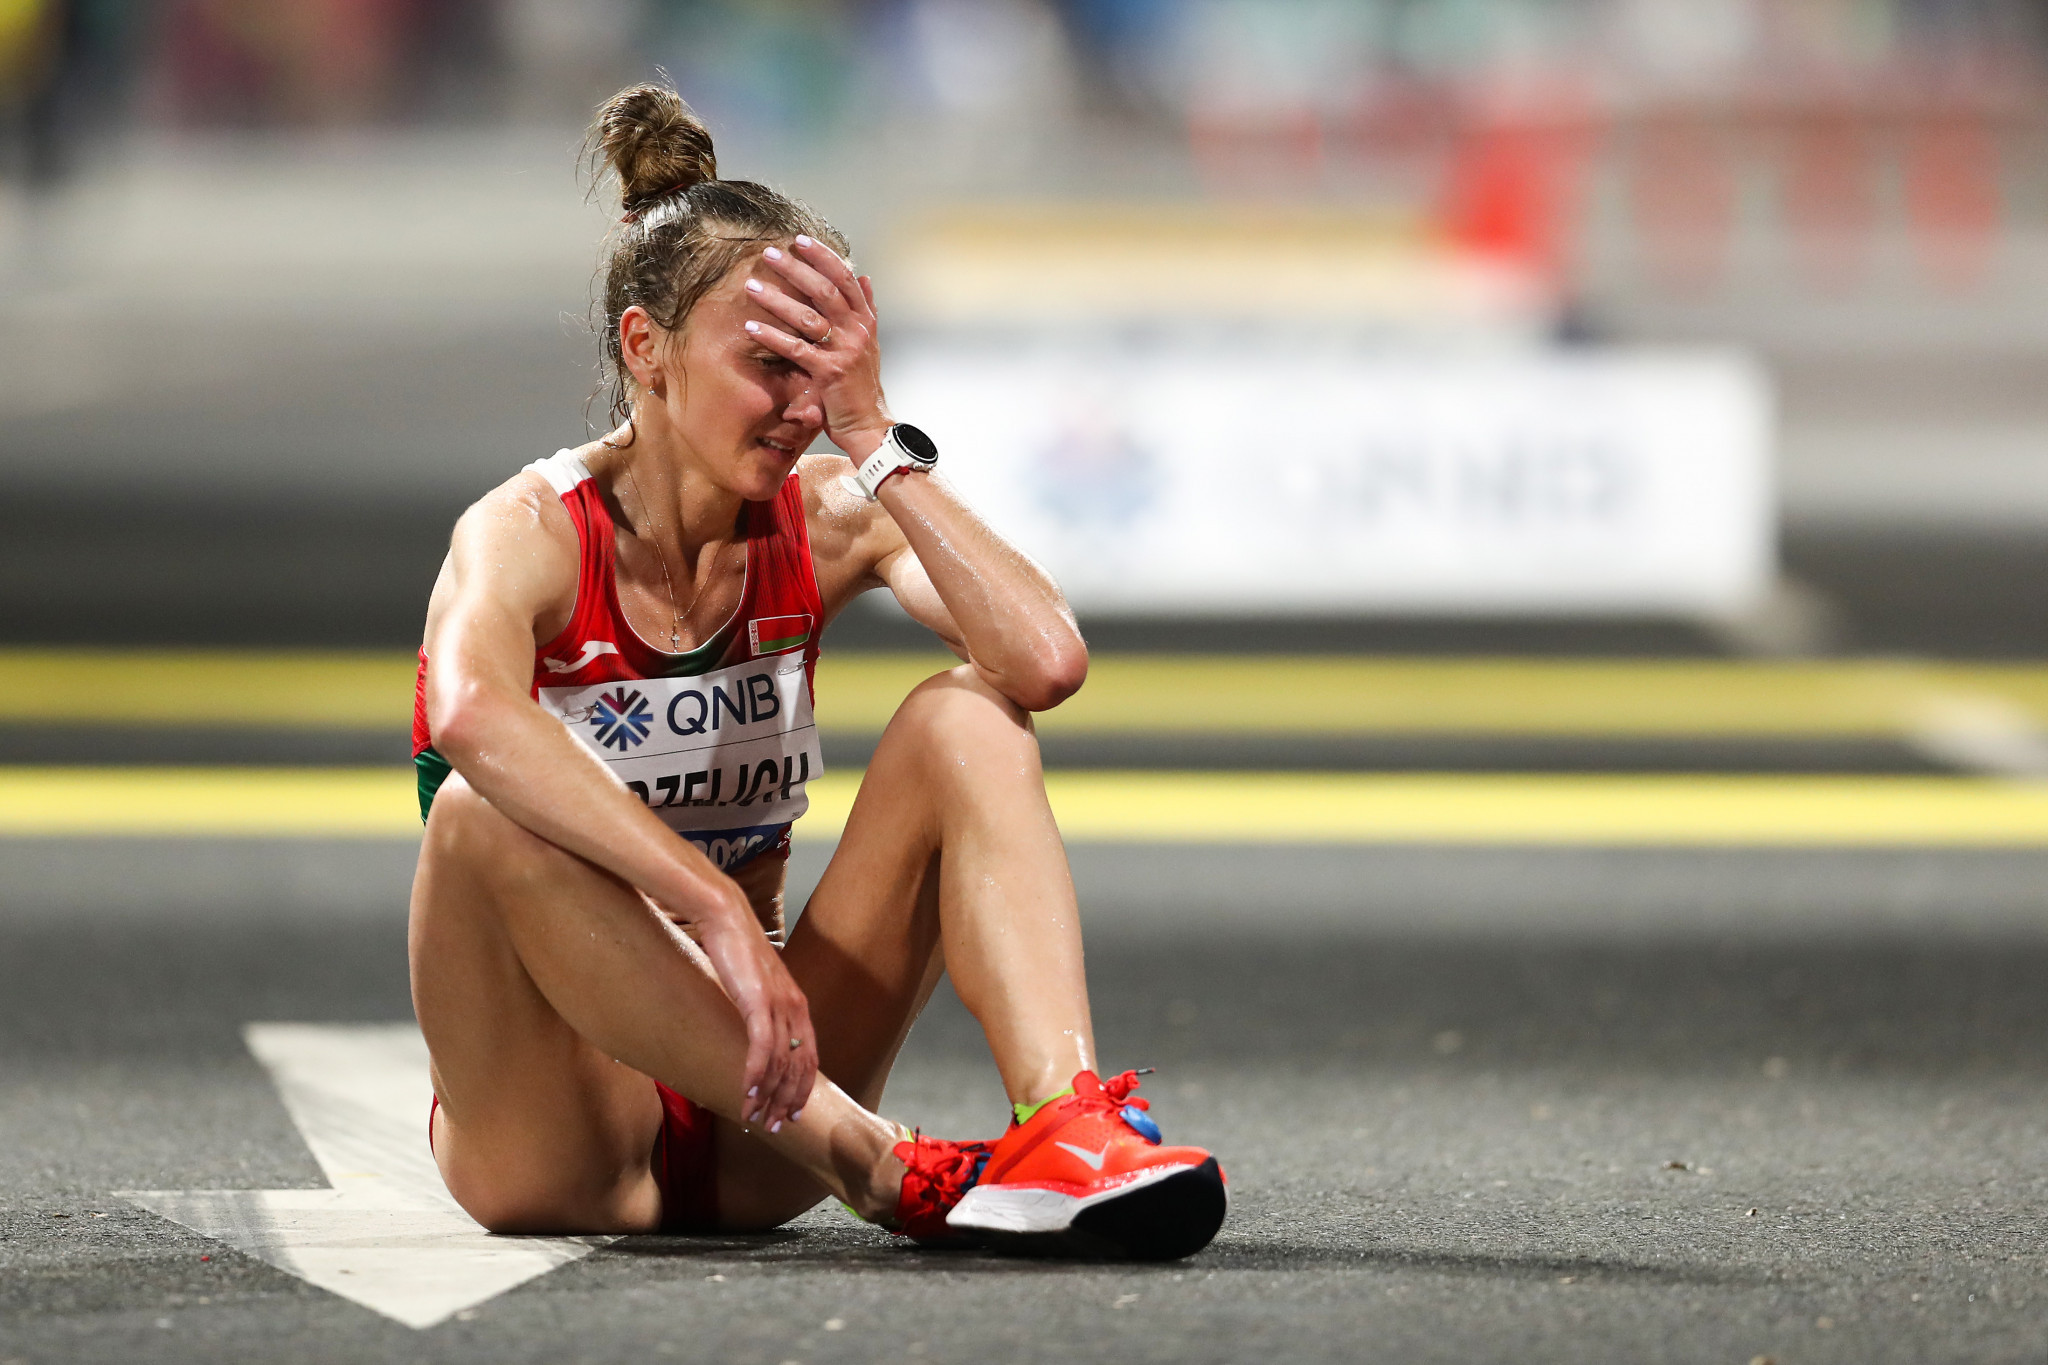 Scenes of runners in distress during the marathon at the IAAF World Championships because of the brutal conditions appear to have helped persuade the IOC of the need to move the events to Sapporo during Tokyo 2020 ©Getty Images